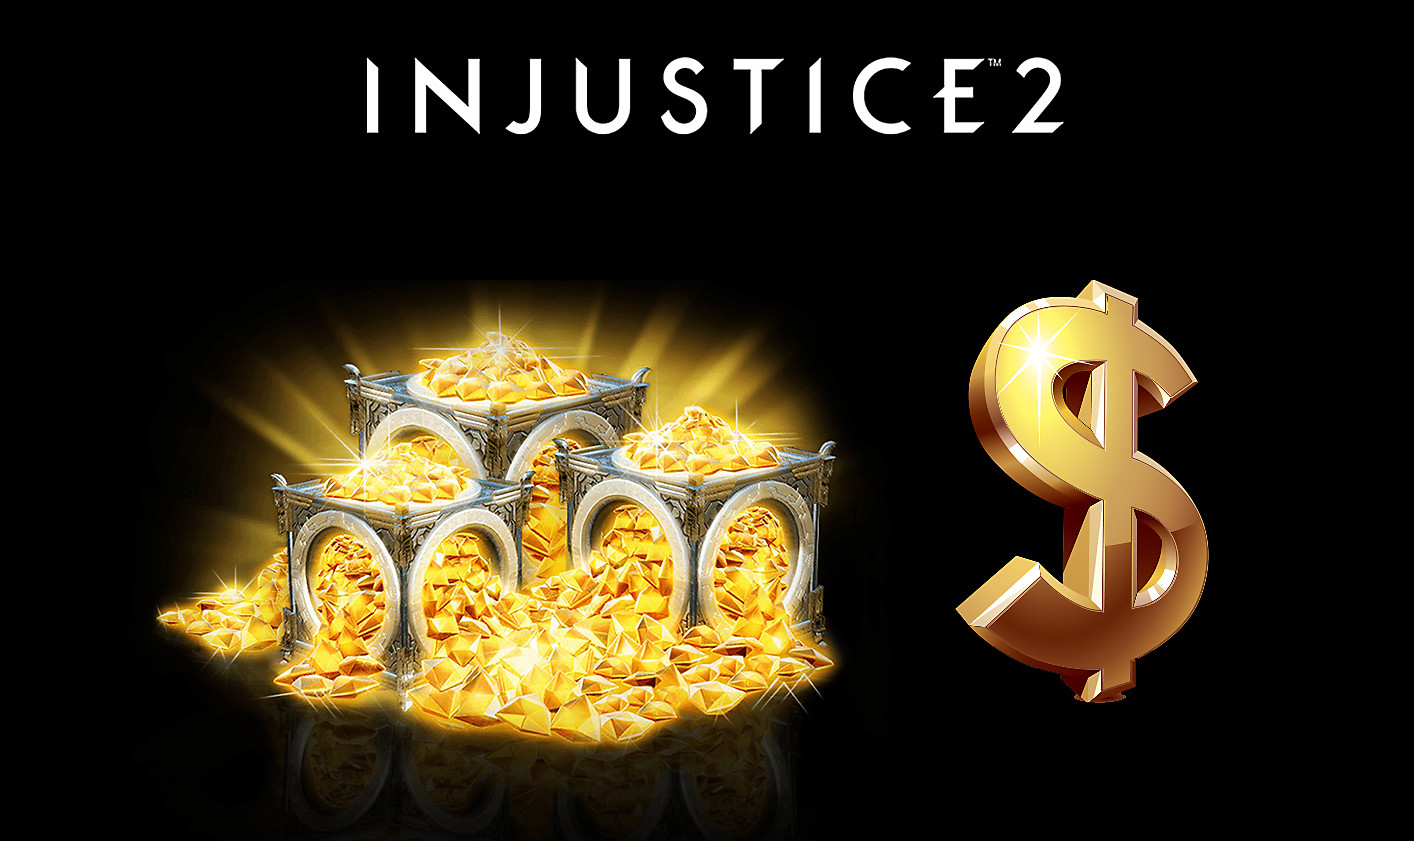 Injustice 2 Currency and Cash - PS4 Tournaments Prize for Stage 3